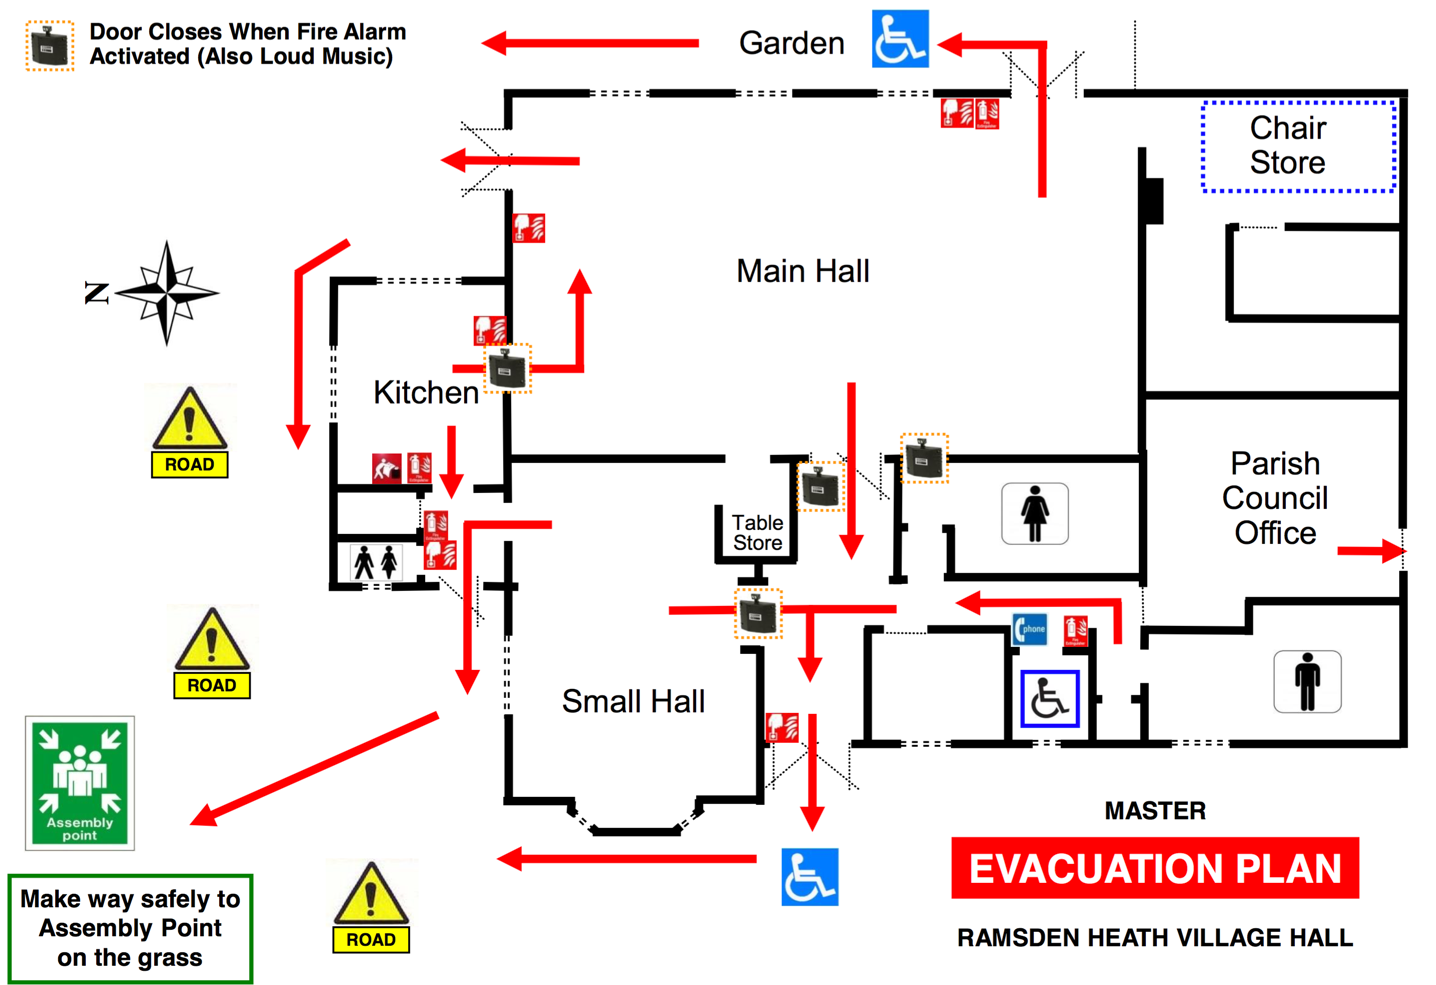 Sample of evacuation plan dimensions soccer field diagram of bacteria fire prevention plan sample trapezium geometry rhvh evacuation plan v1 pdf 1 page fire prevention plan pronofoot35fo Choice Image